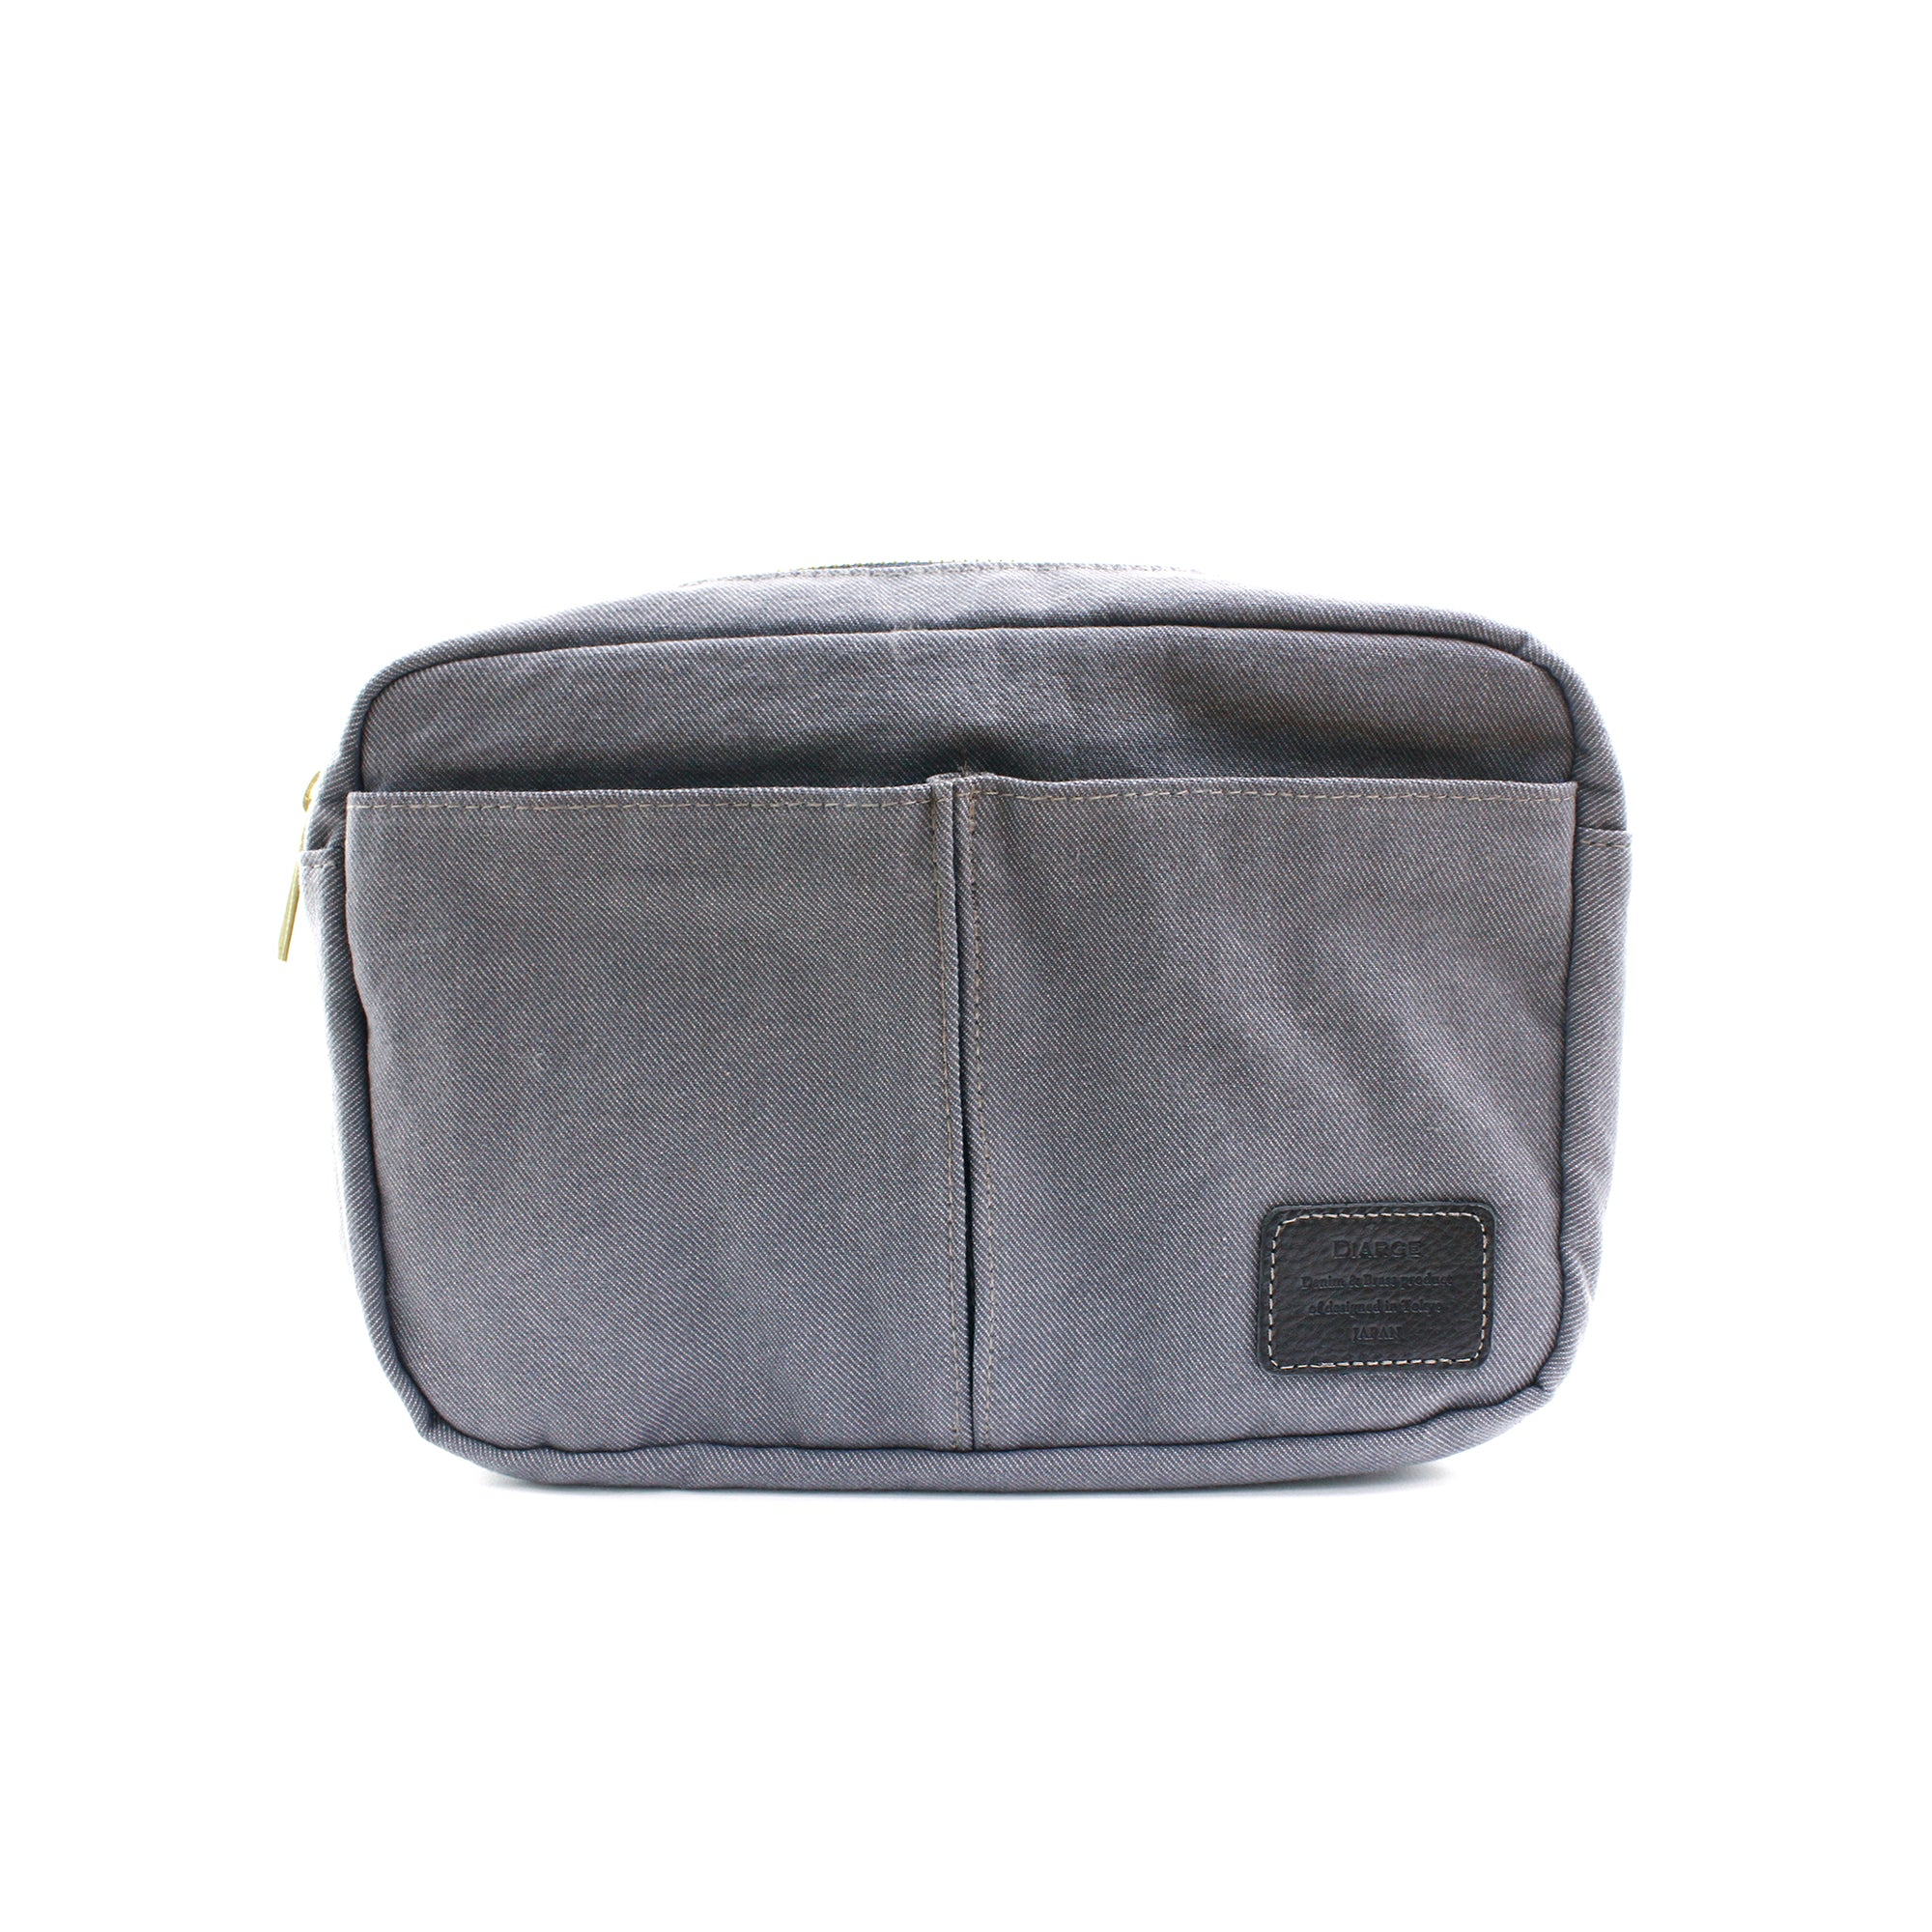 UTILITY POUCH 17002 GRAY